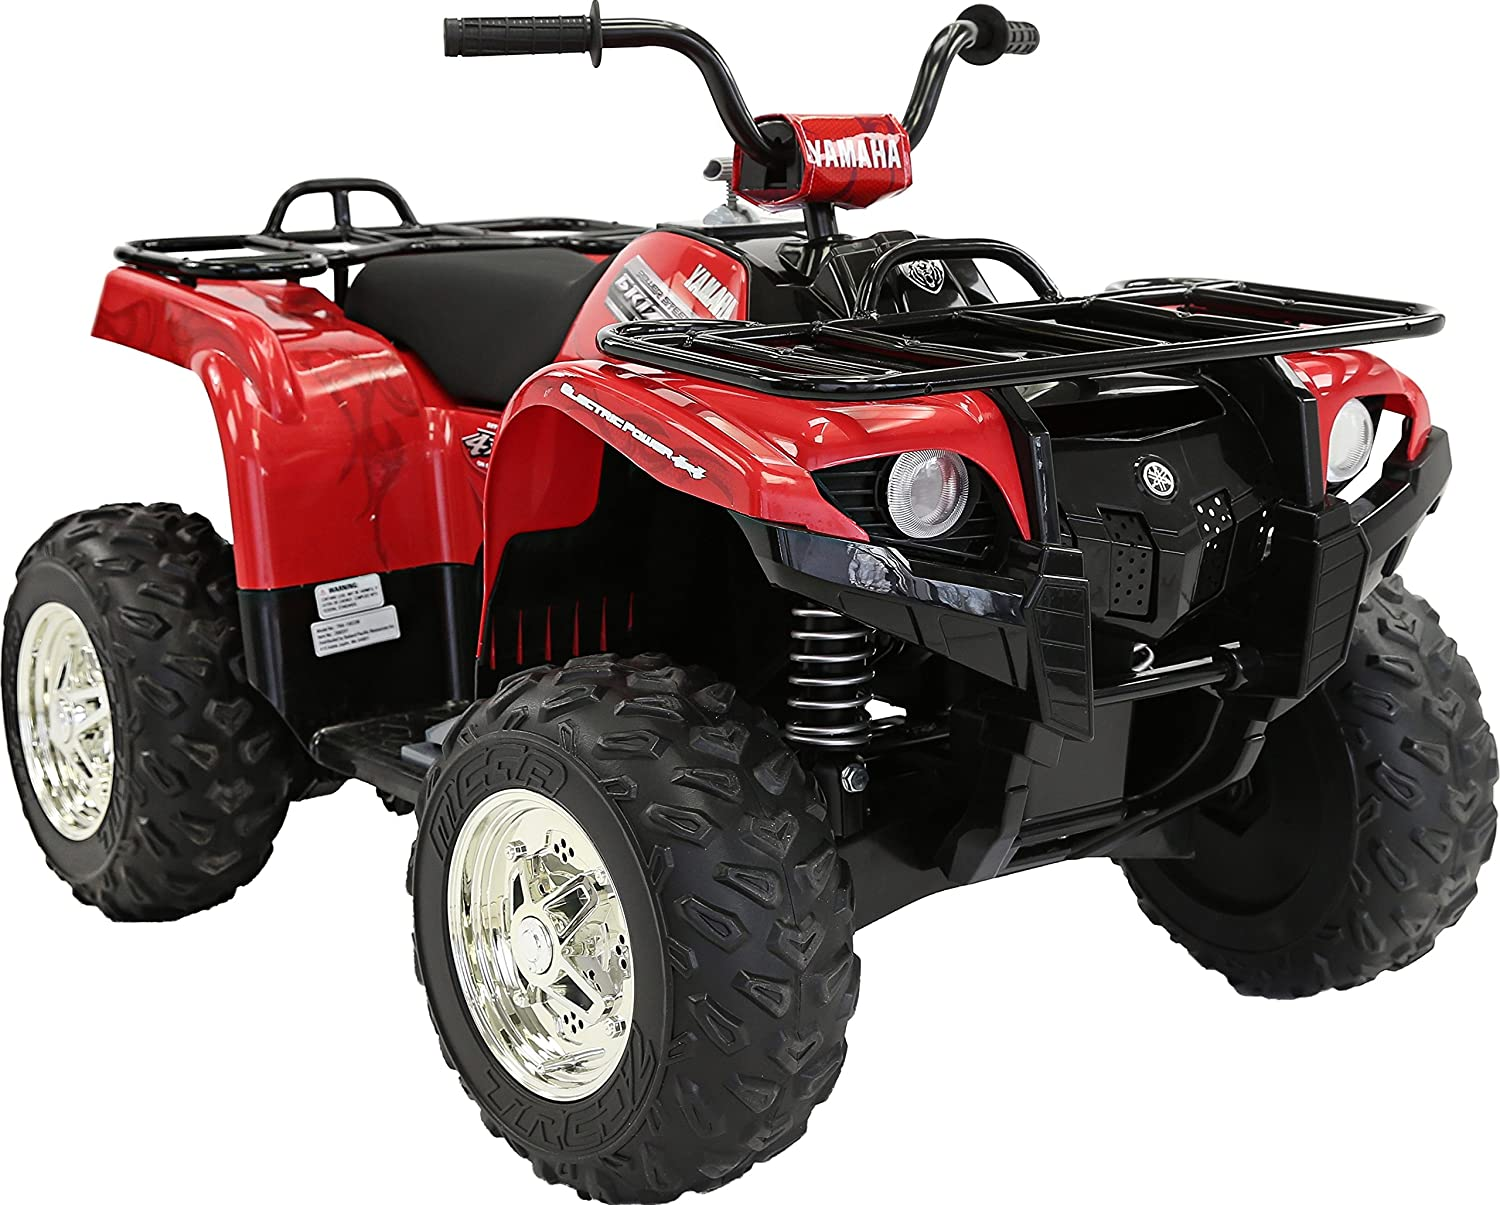 91WBYAzLoTL._SL1500_ amazon com yamaha kids grizzly atv 12v electric ride on quad 50Cc 4 Wheeler Wiring Diagram at nearapp.co